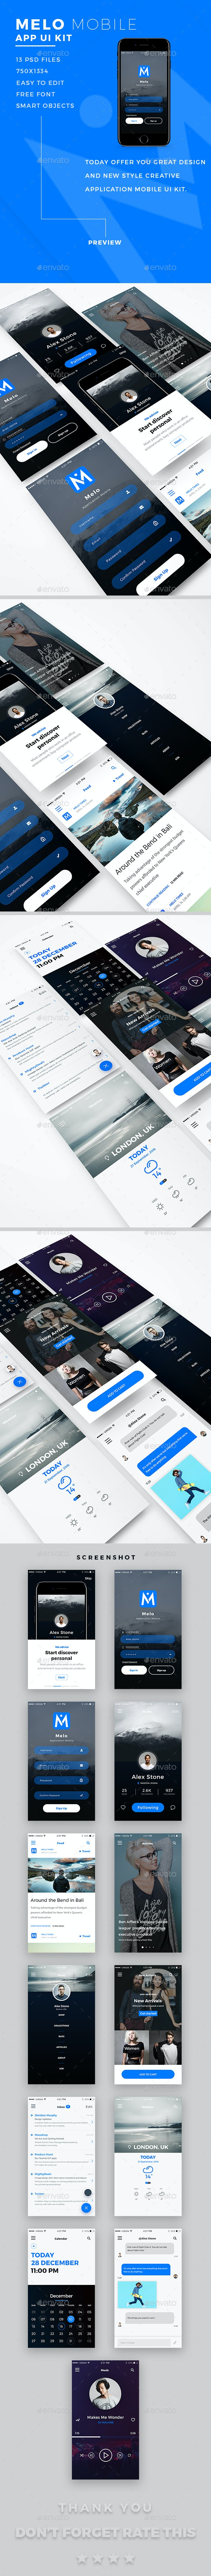 Melo App Ui Kit